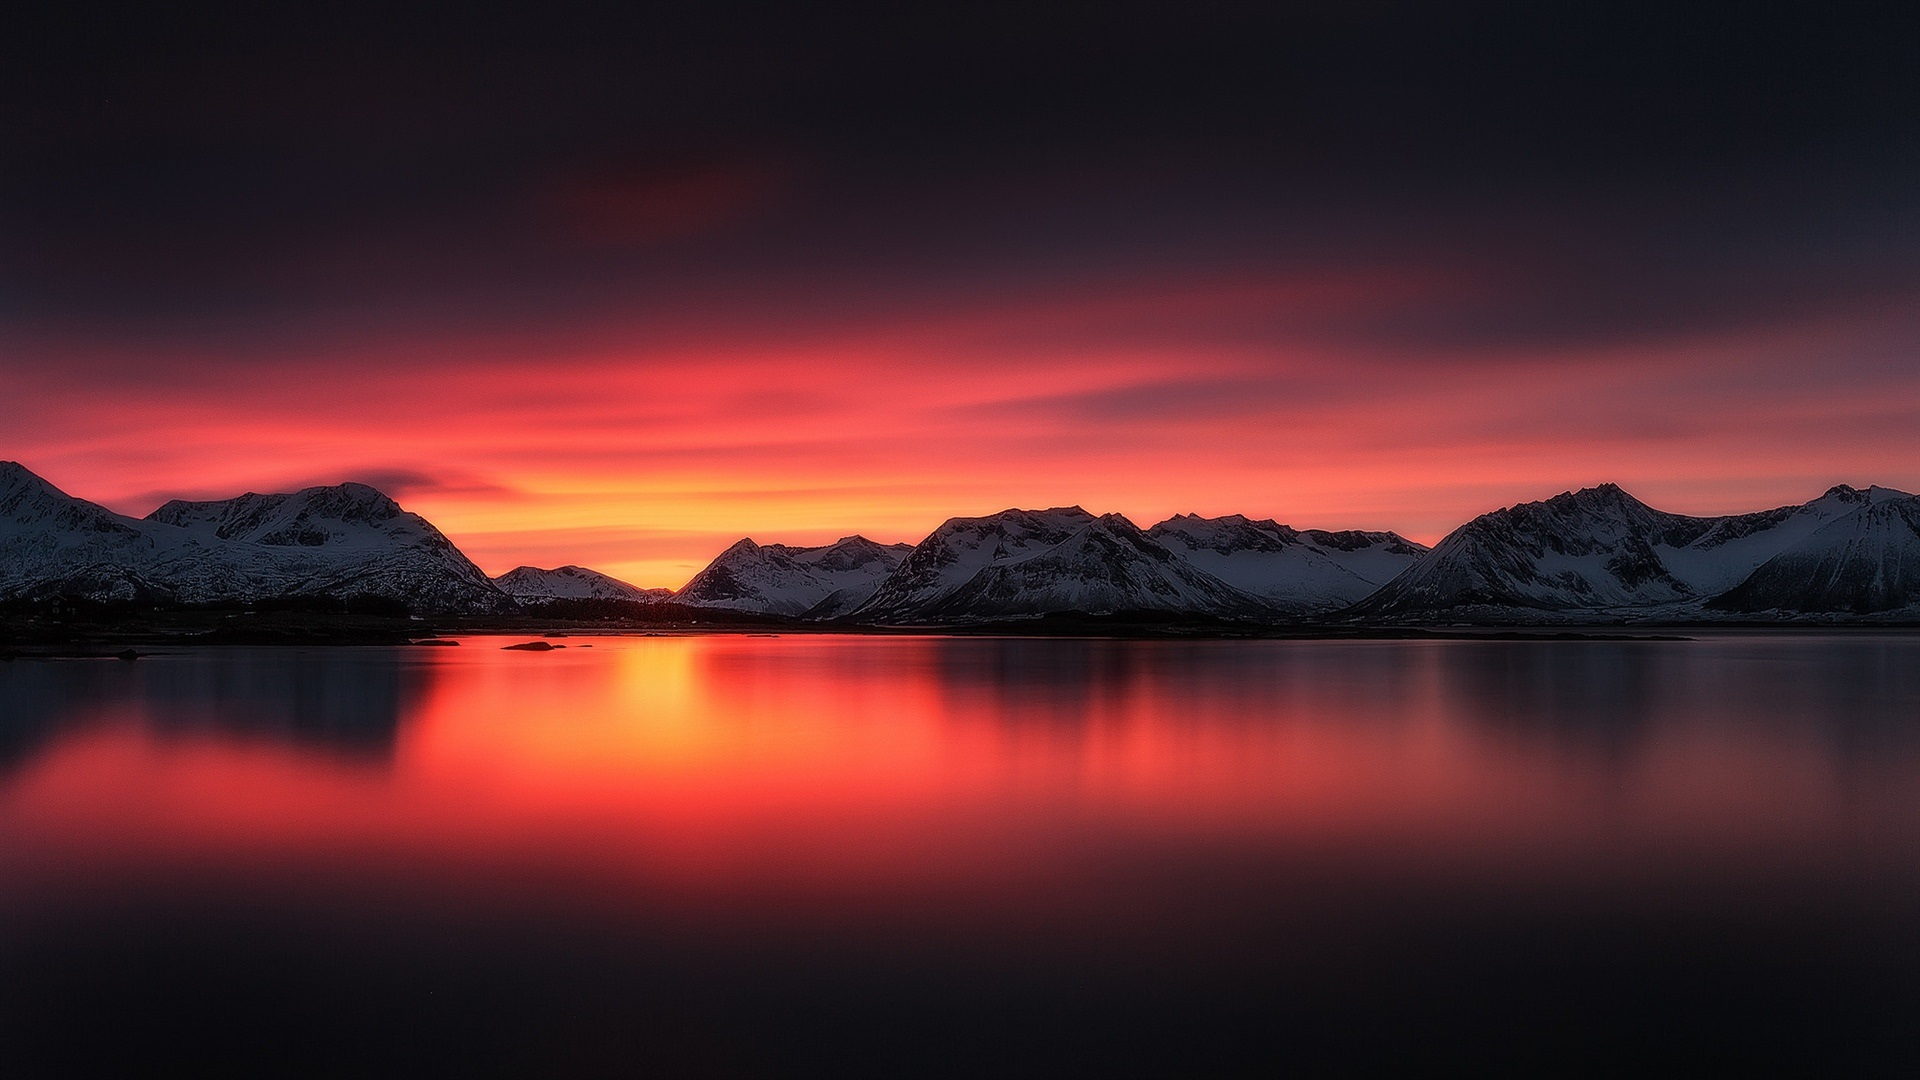 Wallpaper Beautiful Sunset Landscape Lake Red Sky Mountains Snow